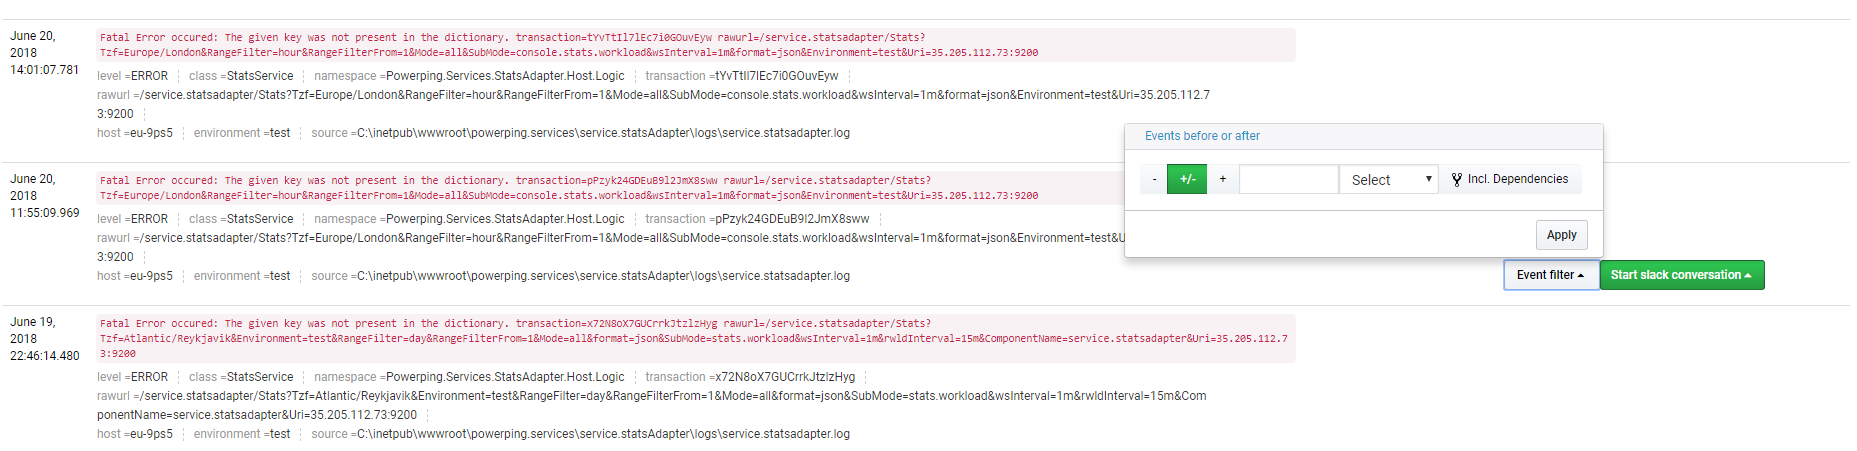 Enabling Log collection for application pools - powerpinghq com